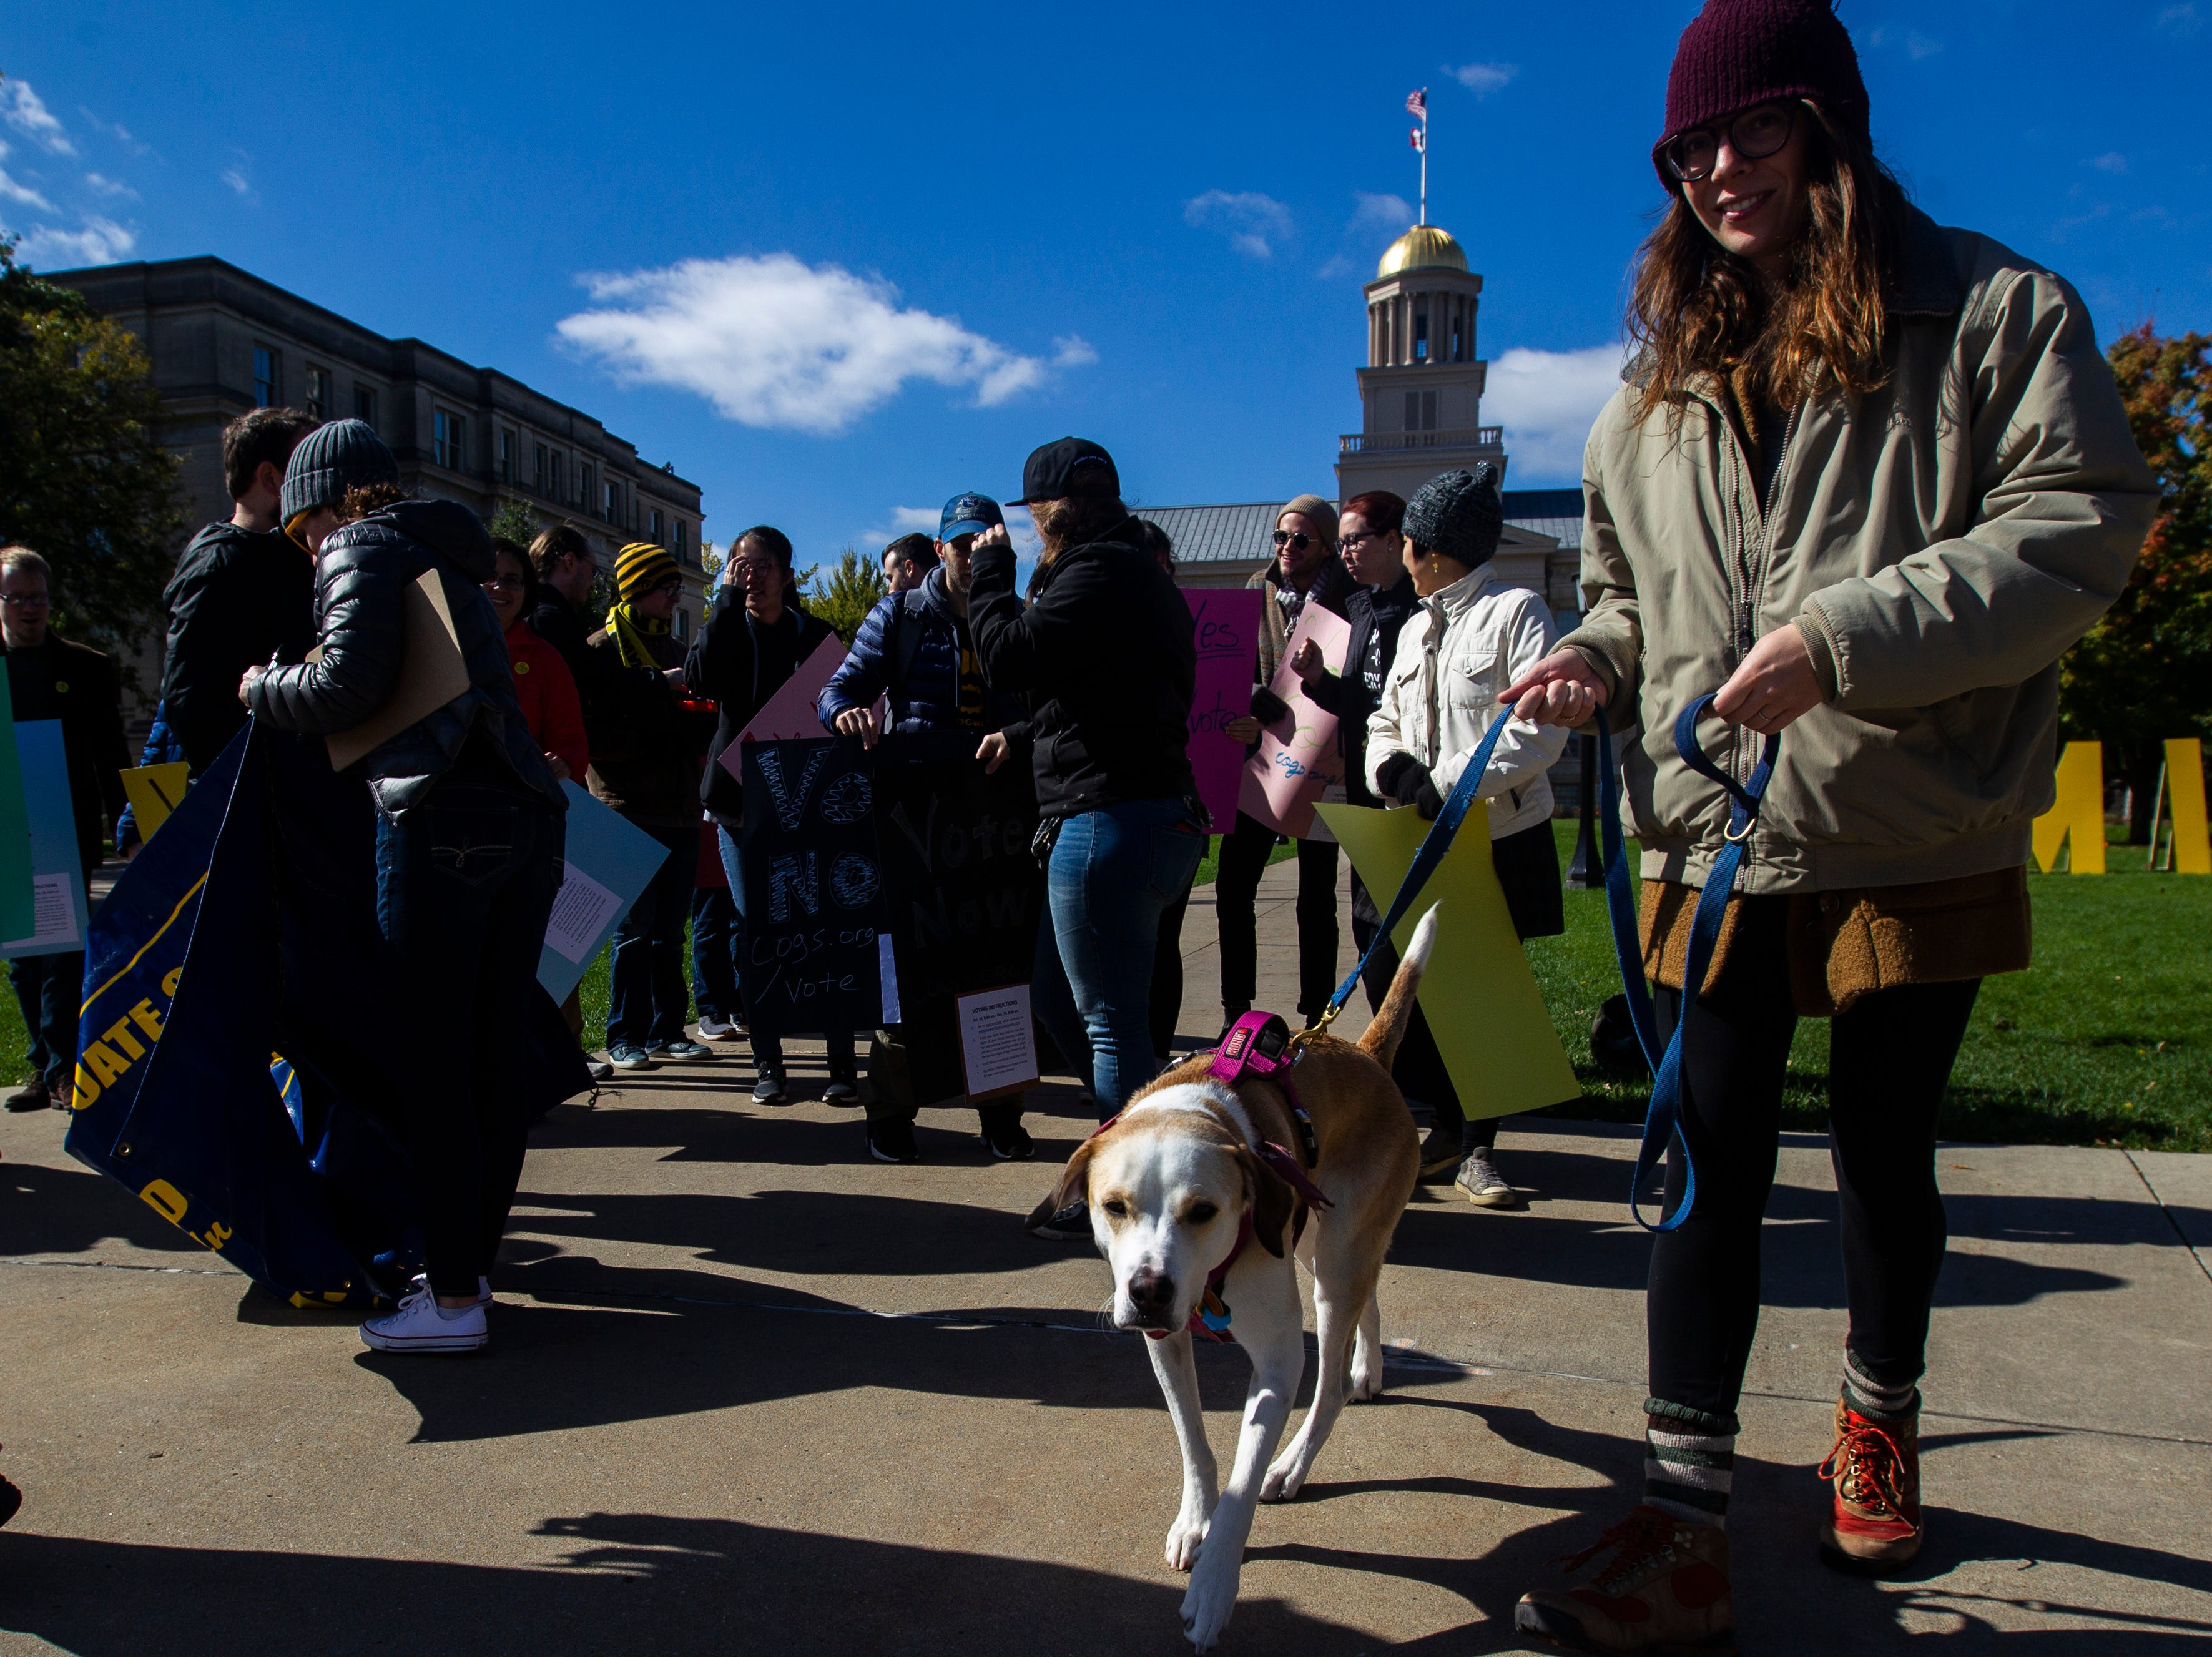 Rachel Jepsen walks with her dog Bird after attending a Campaign to Organize Graduate Students demonstration on Monday, Oct. 15, 2018, on the Pentacrest along Clinton Street in Iowa City.